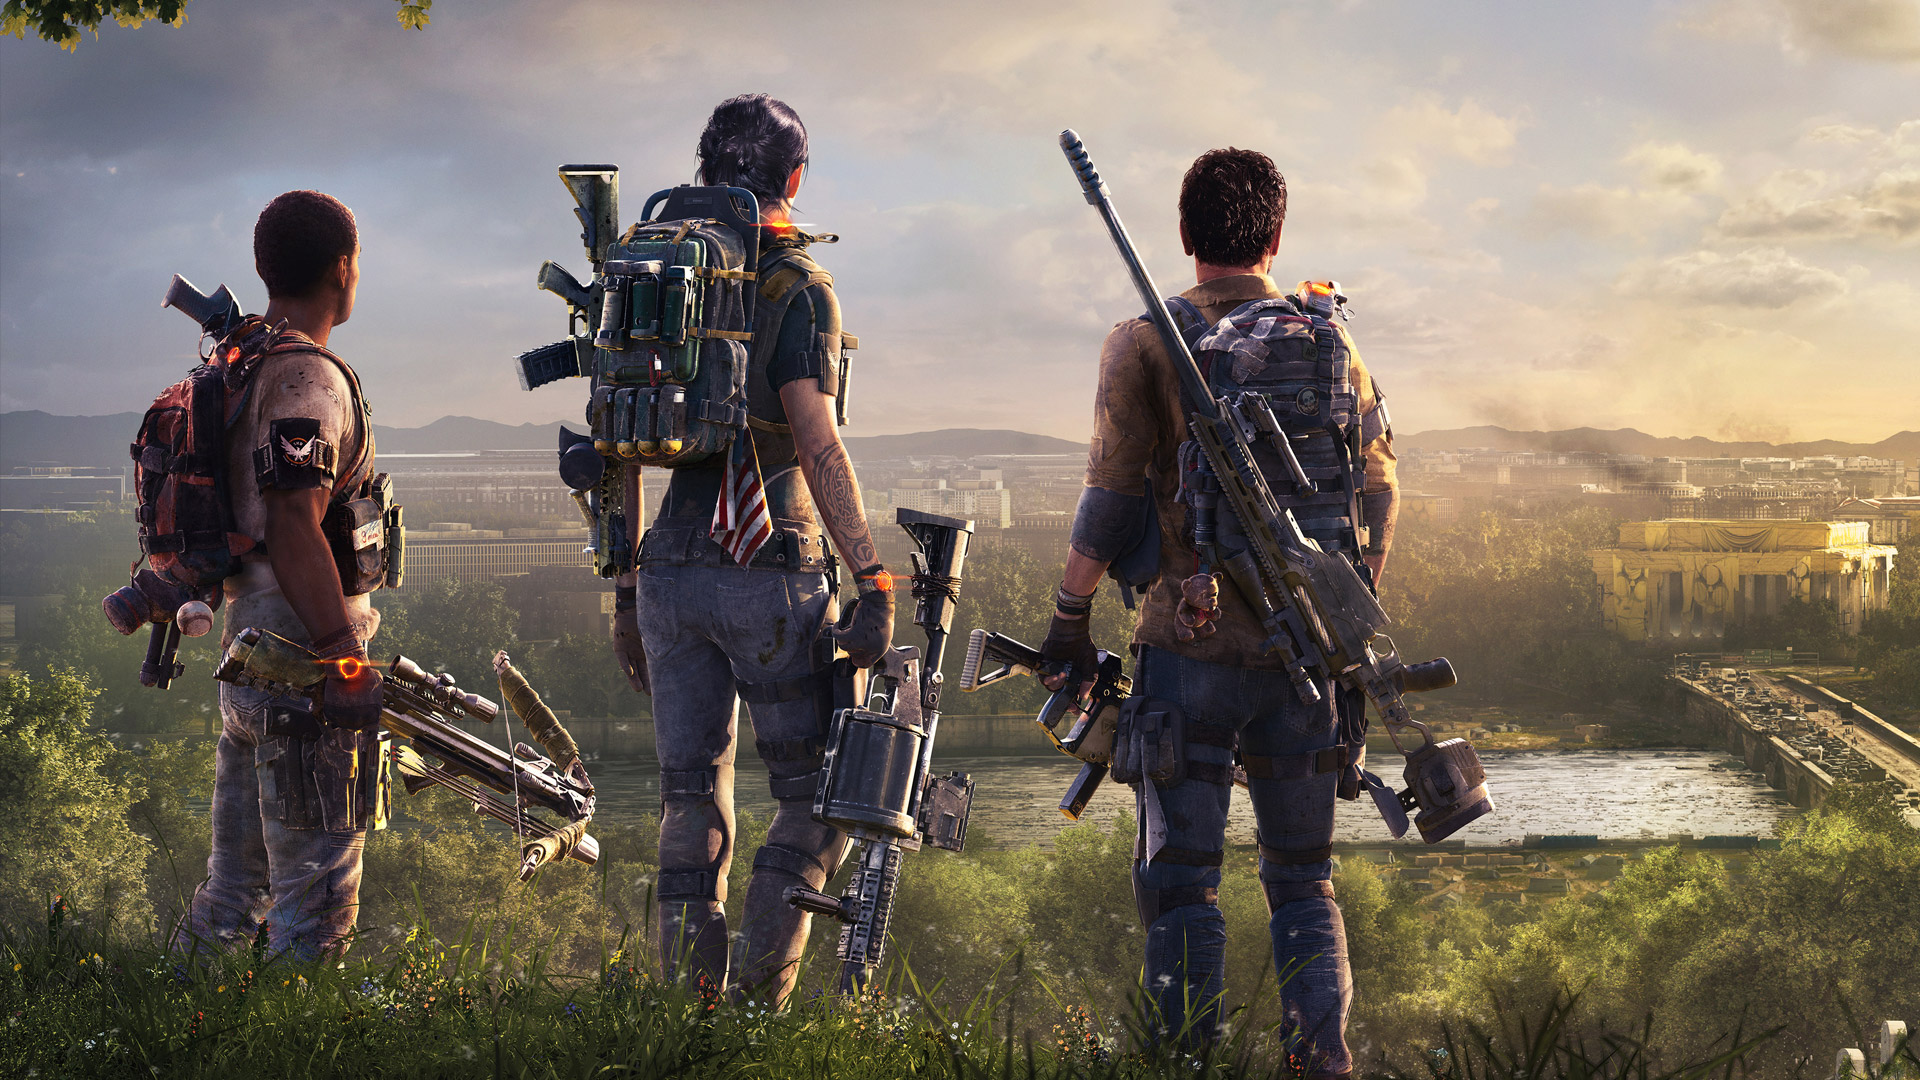 Analisis Sistem PC Untuk Game Tom Clancy Spesifikasi PC - Tom Clancy's The Division 2